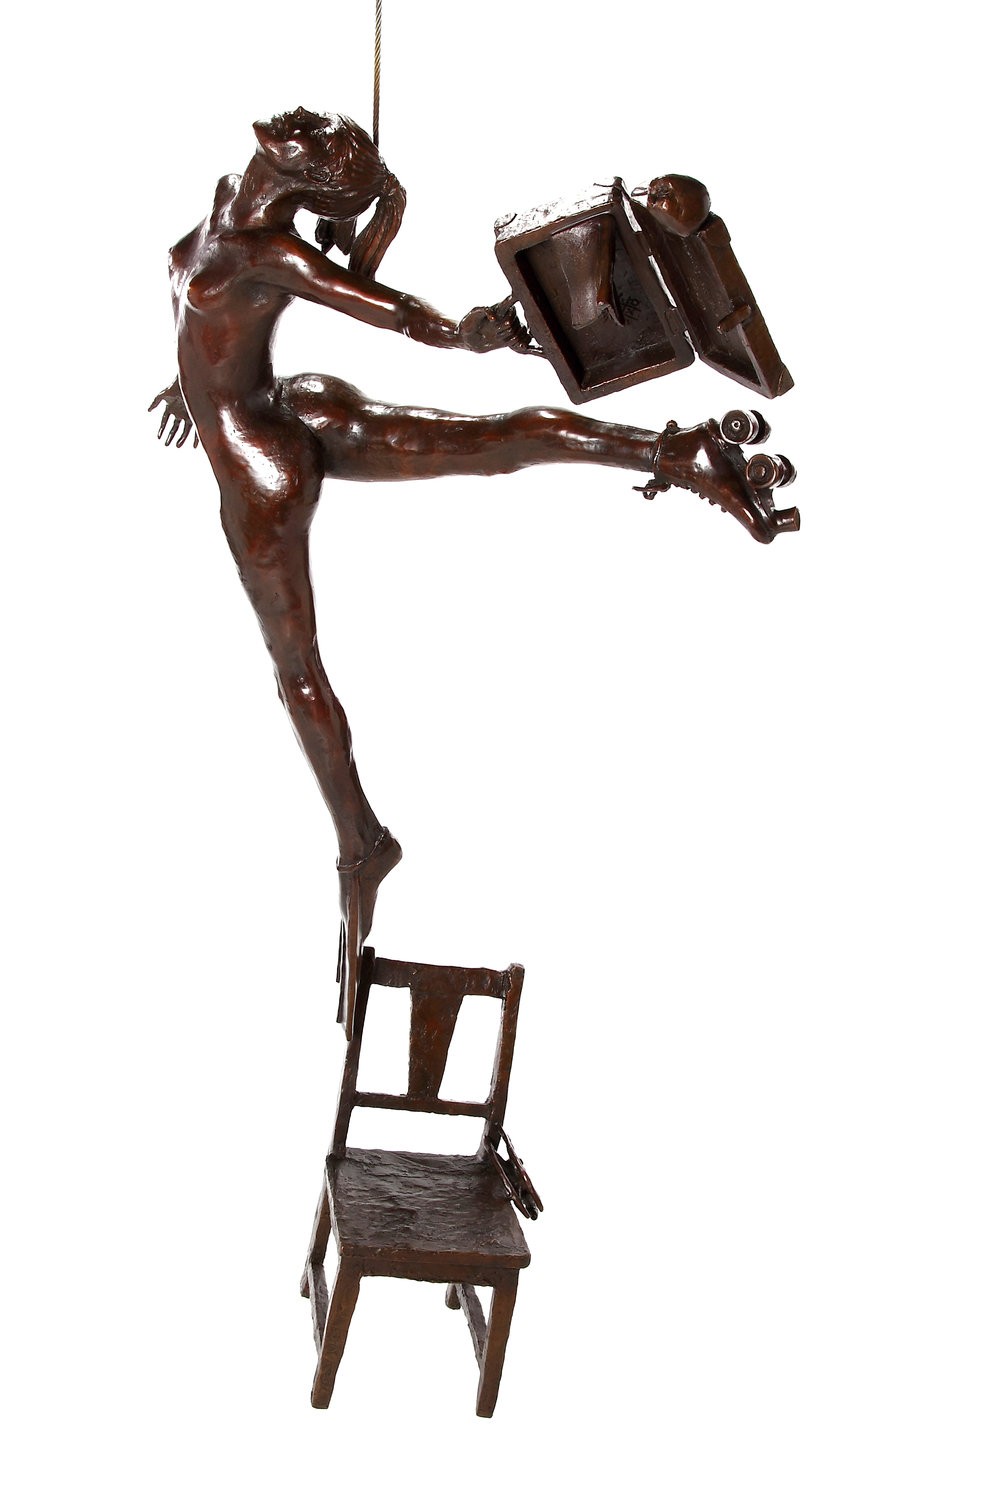 Bronze by Marke Meyer entitled Finding My Feet